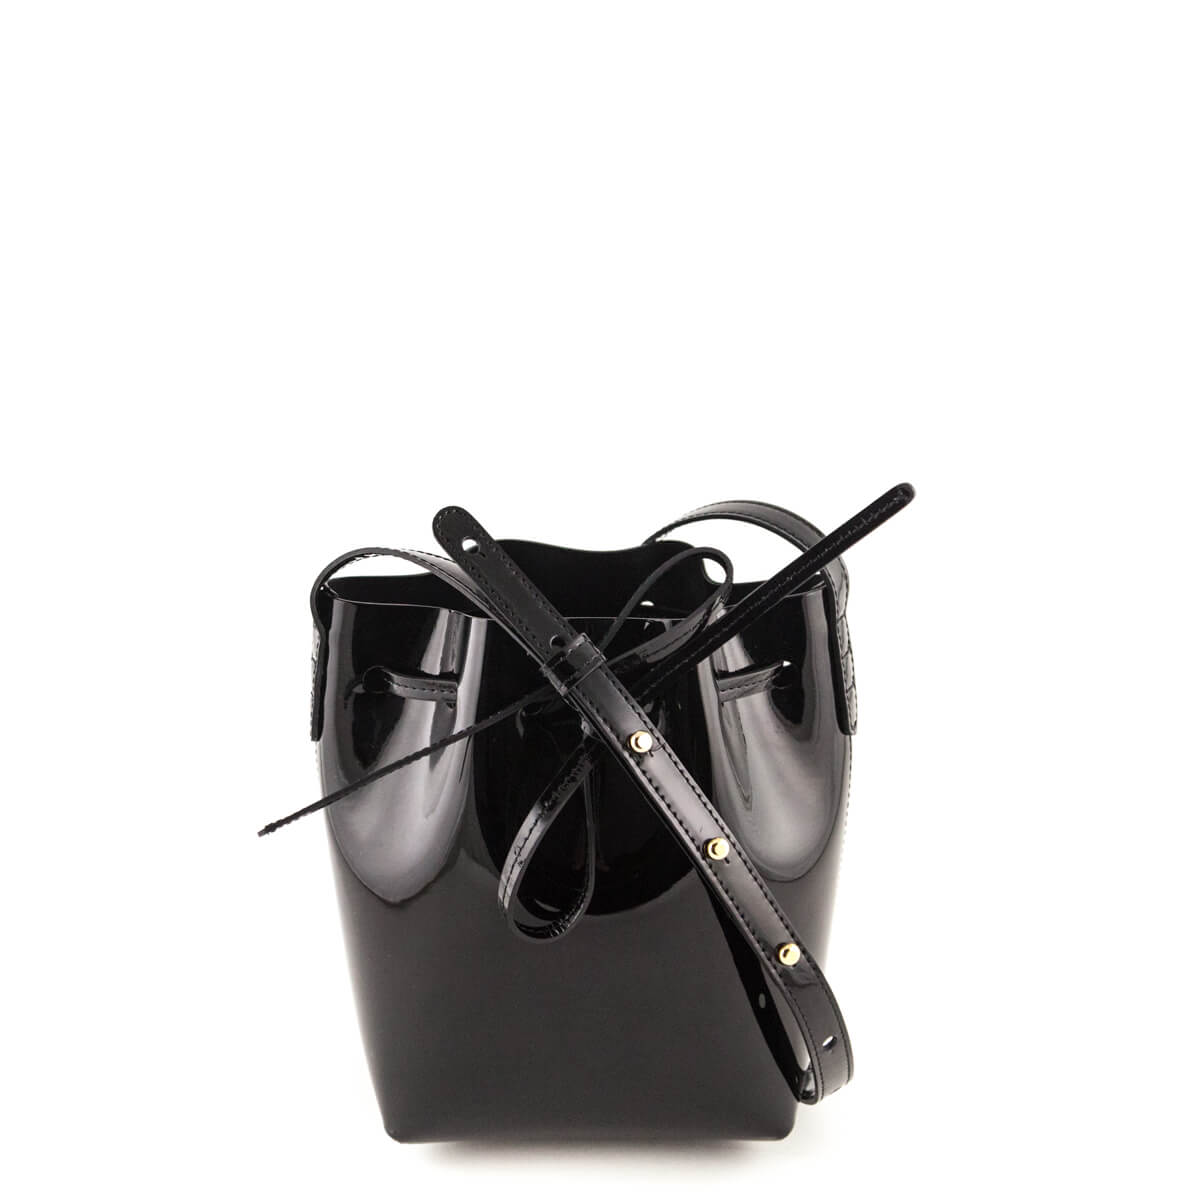 Mansur Gavriel Black Patent Mini Mini Bucket bag - LOVE that BAG - Preowned  Authentic Designer ...